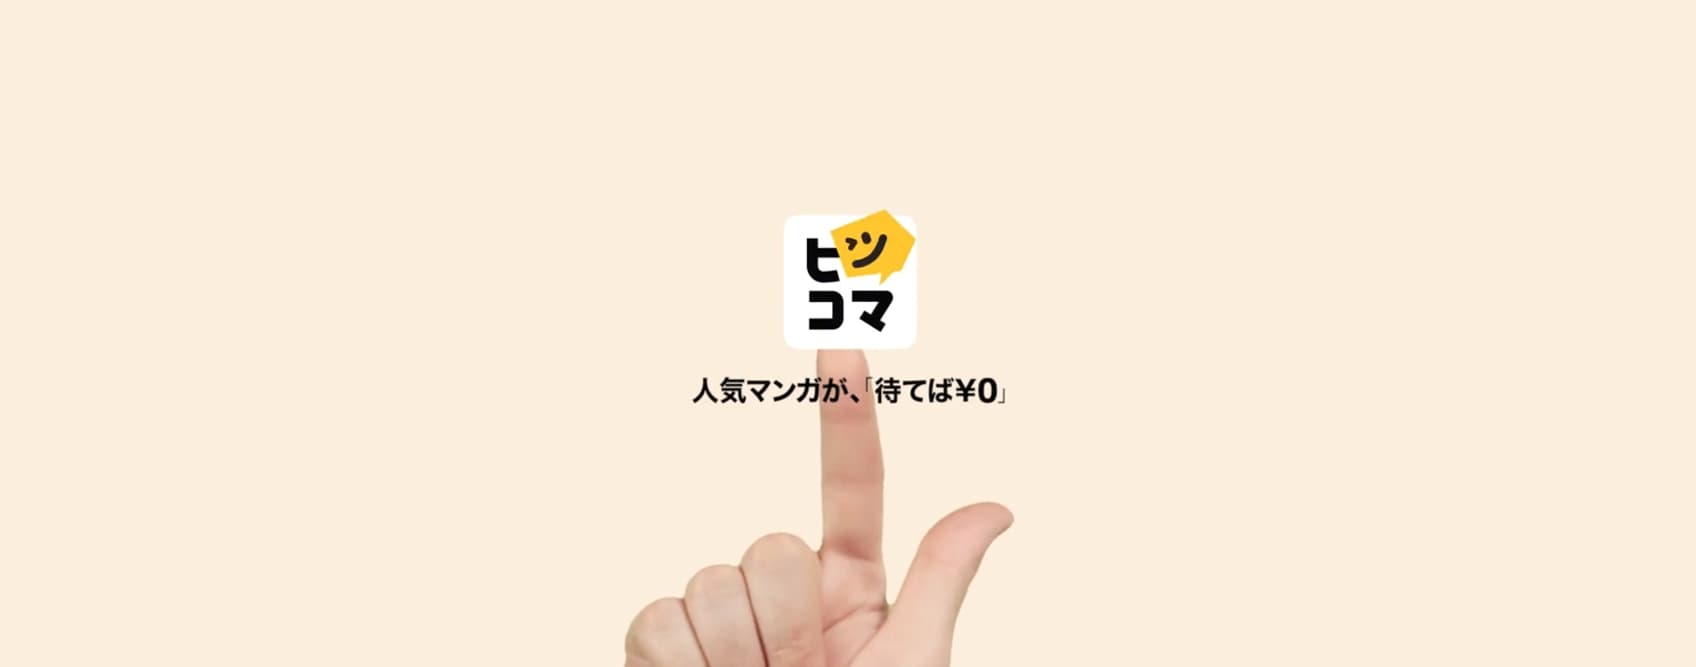 Kakao Japan Piccoma TV Platform